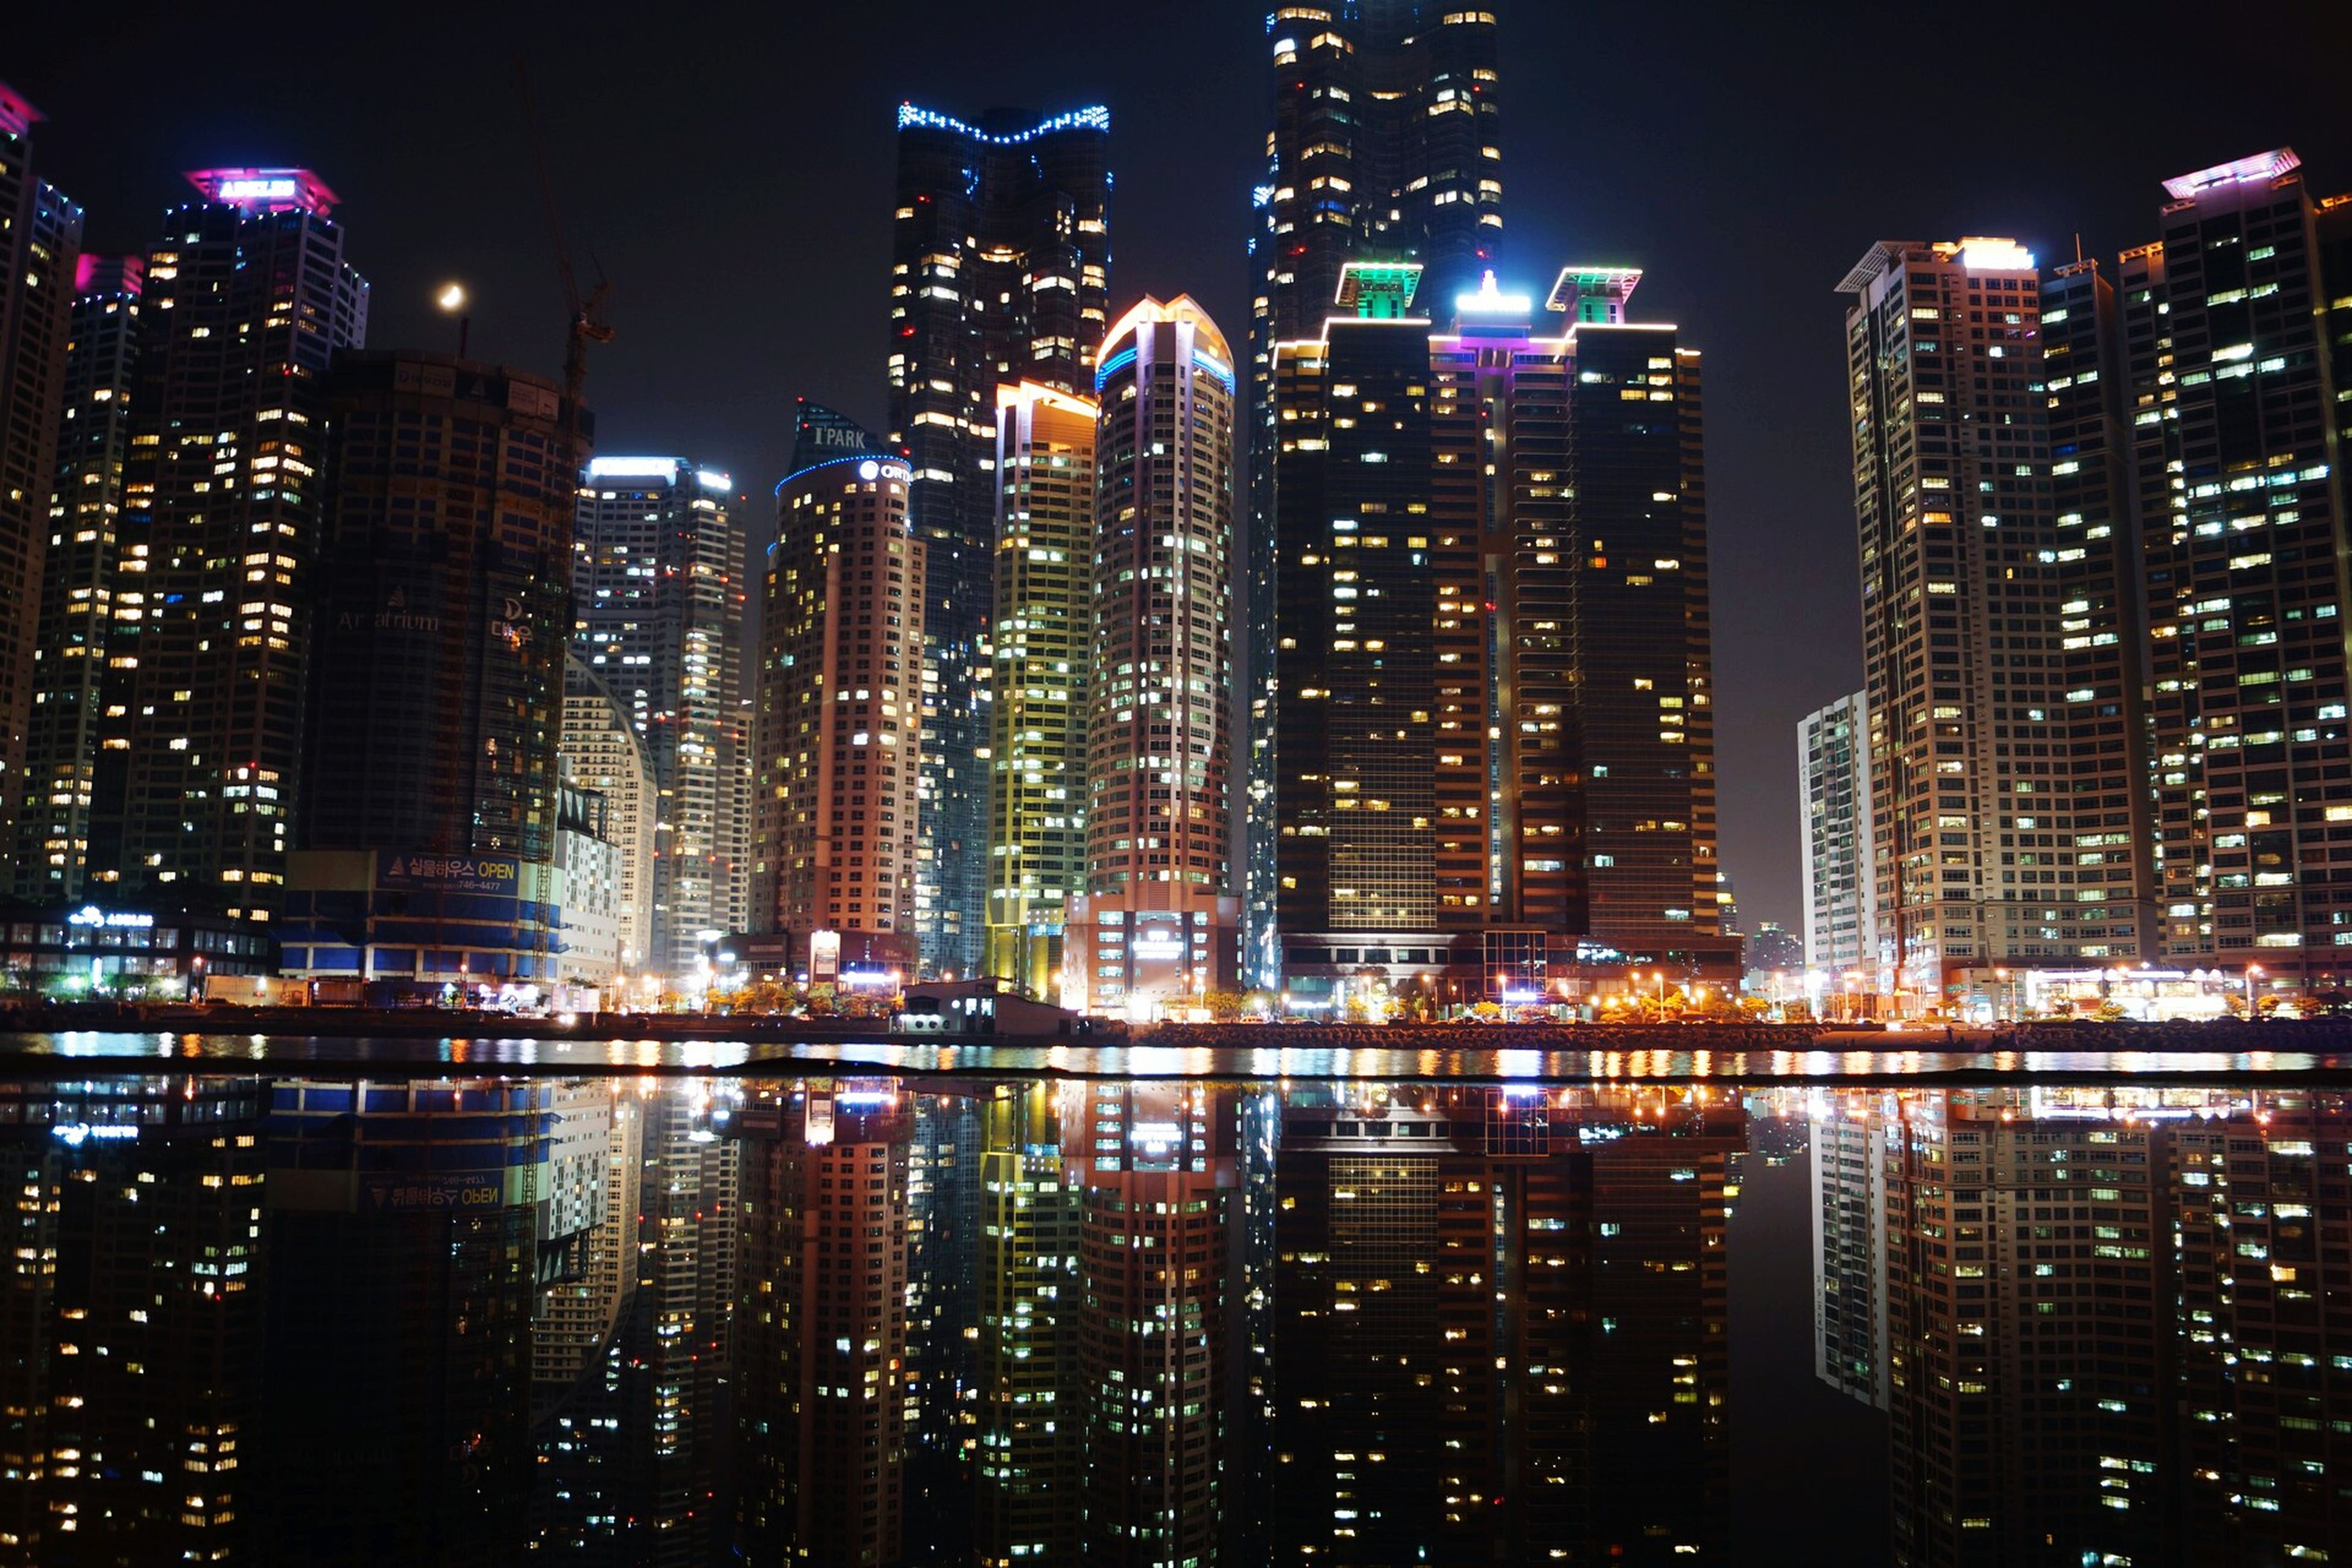 night, illuminated, building exterior, city, architecture, skyscraper, built structure, cityscape, modern, tall - high, tower, office building, financial district, urban skyline, capital cities, reflection, city life, crowded, travel destinations, tall